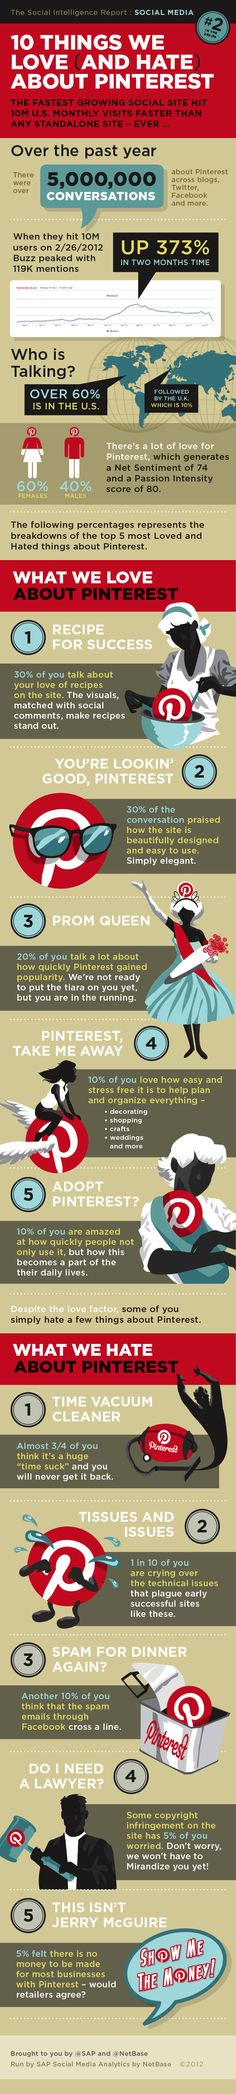 The Interest In Pinterest: The Ten Things We Love (and Hate) Infographic